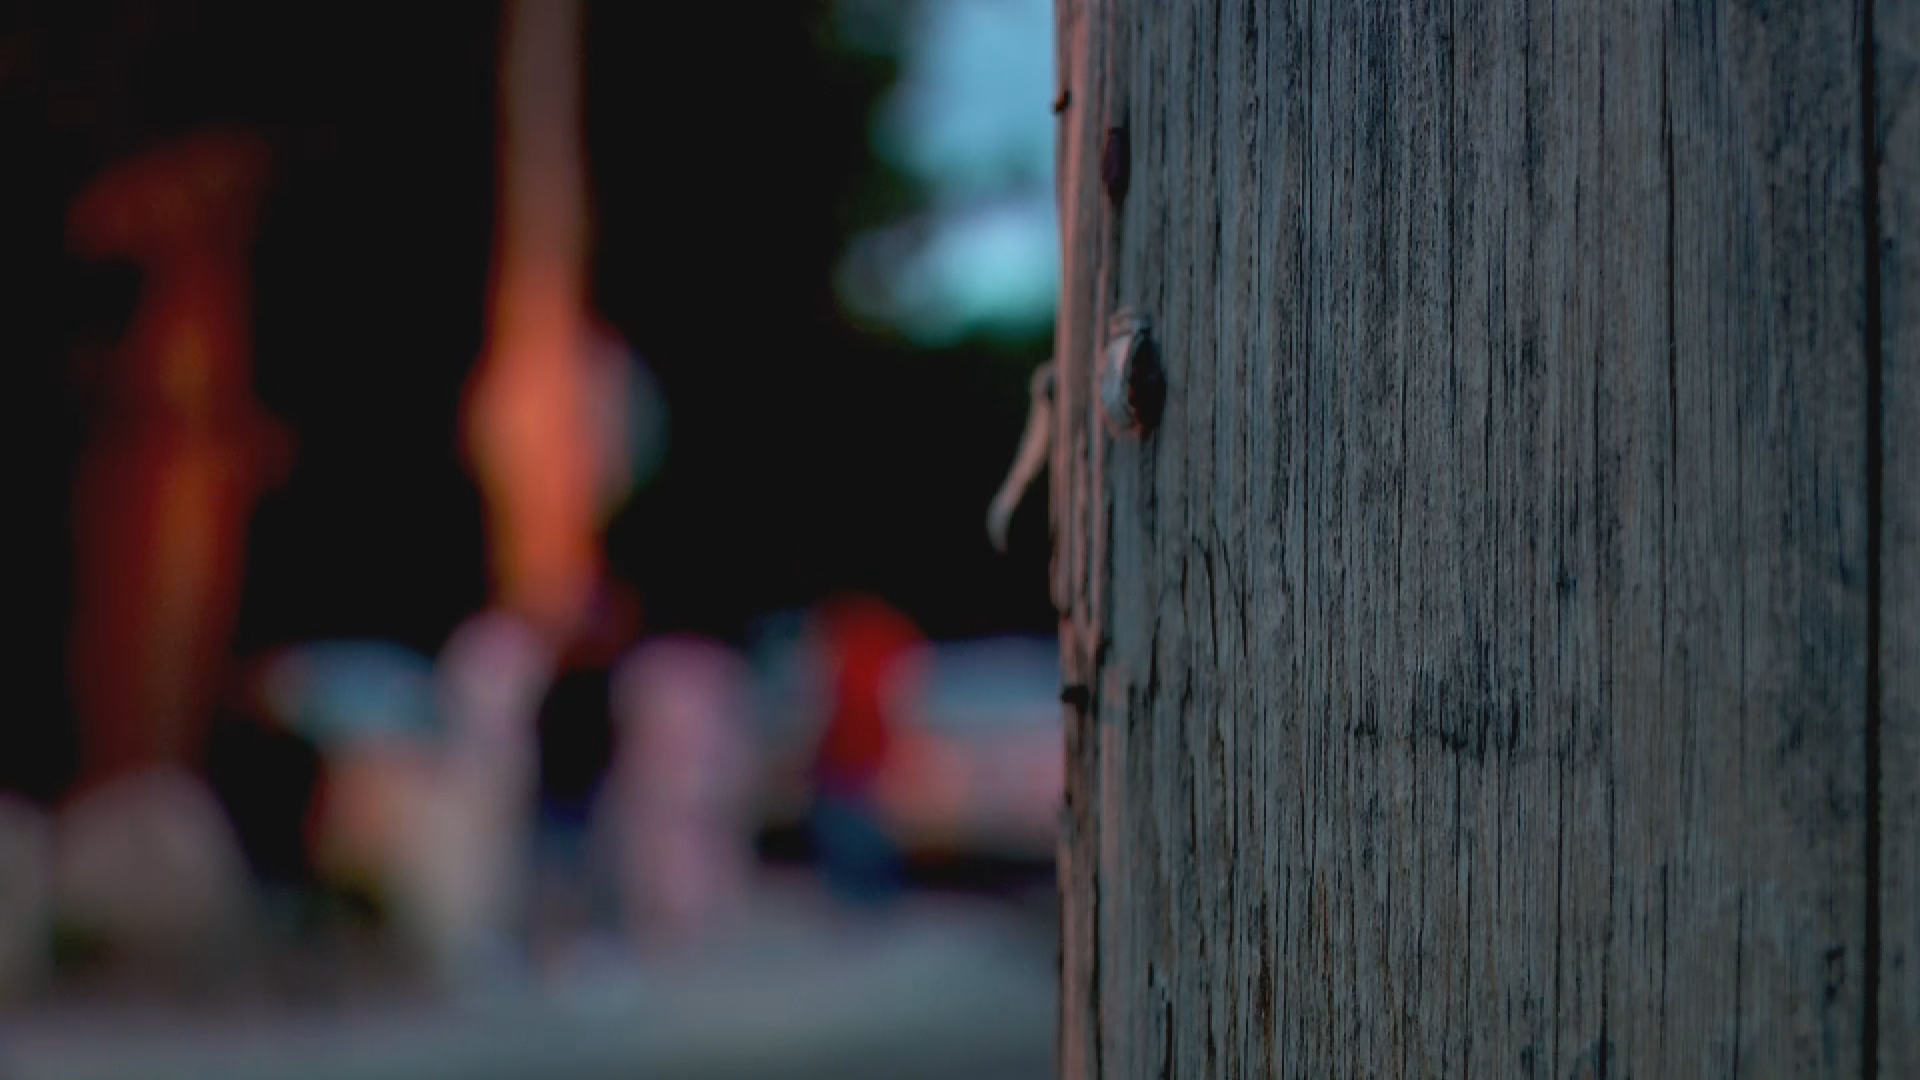 Bystanders gather outside crime scene tape near the spot where 17-year-old Edwin Reyes was killed in West Valley City on June 28, 2020. (Photo: KUTV)<p></p>